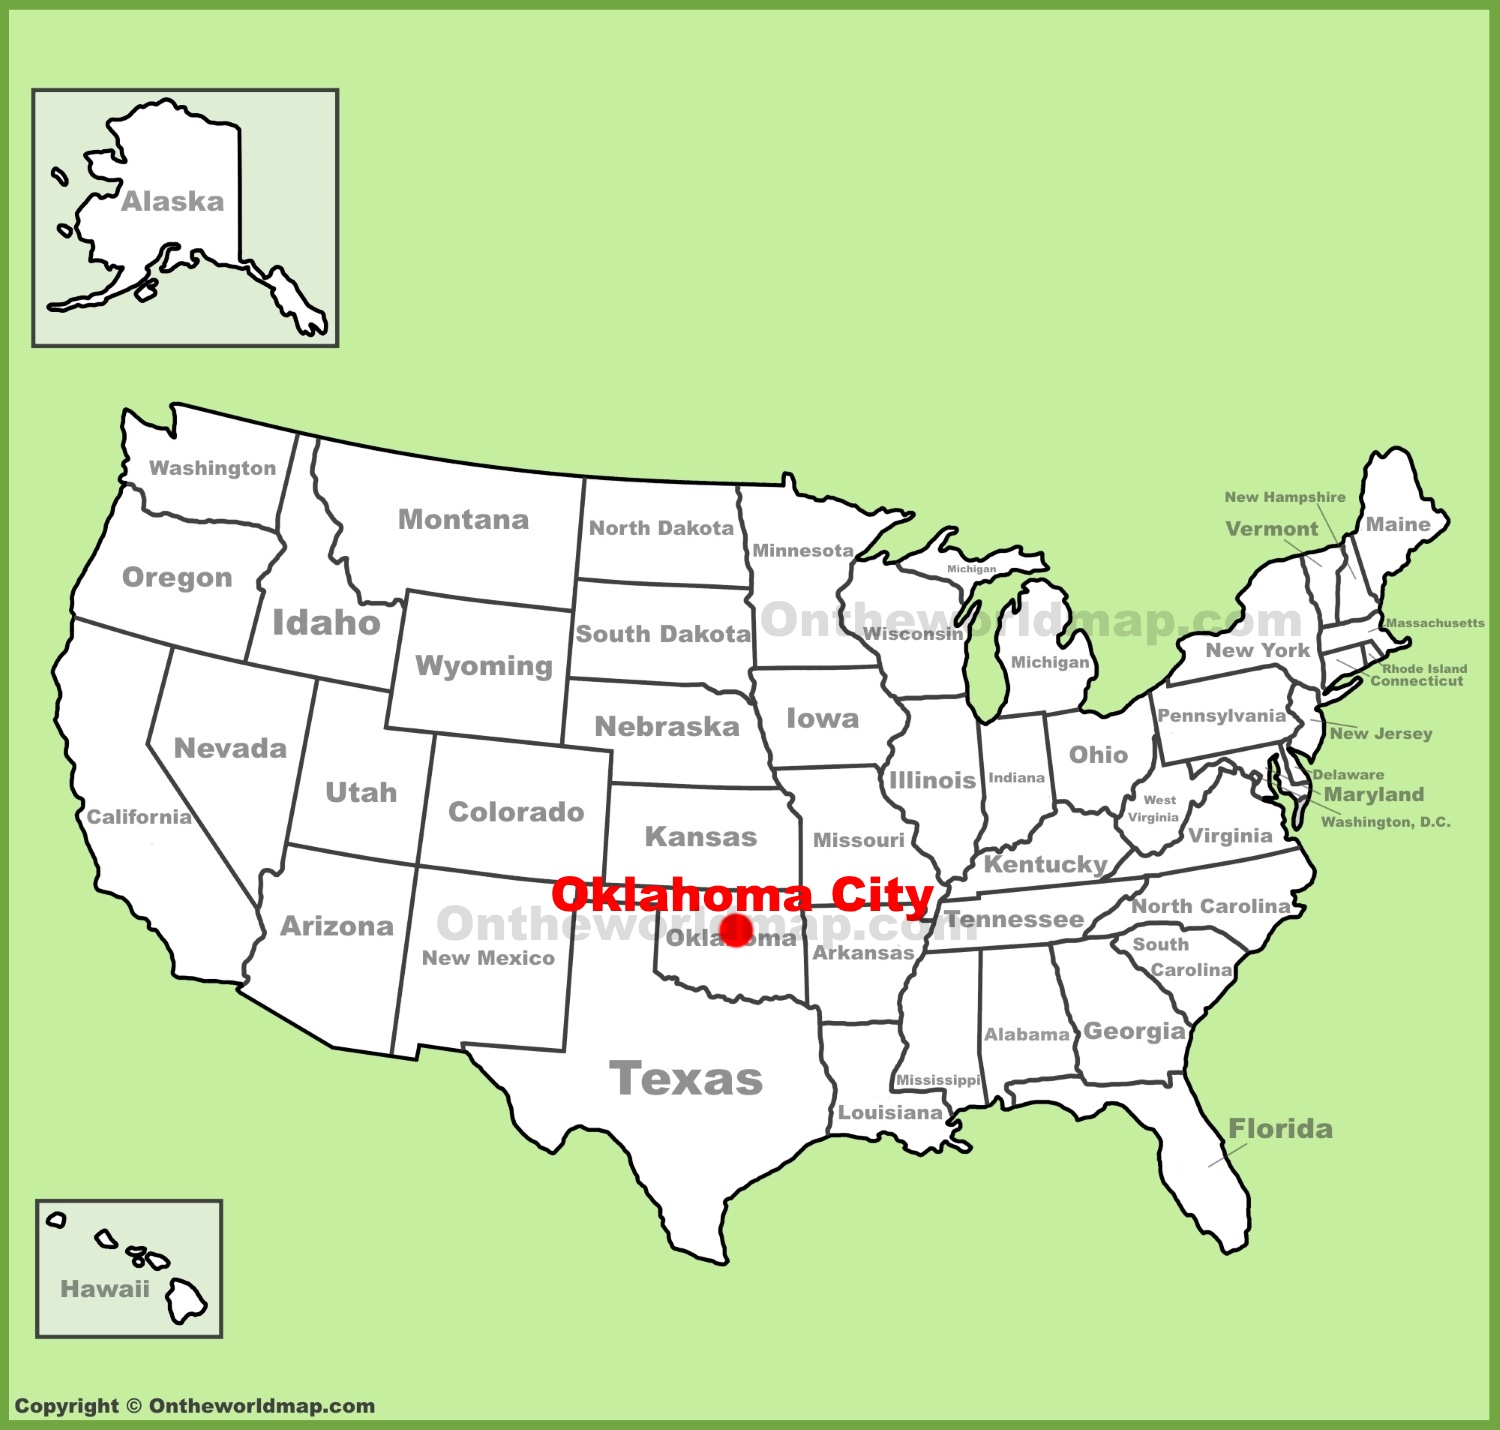 Oklahoma Map With Cities Oklahoma City Maps | Oklahoma, U.S. | Maps of Oklahoma City